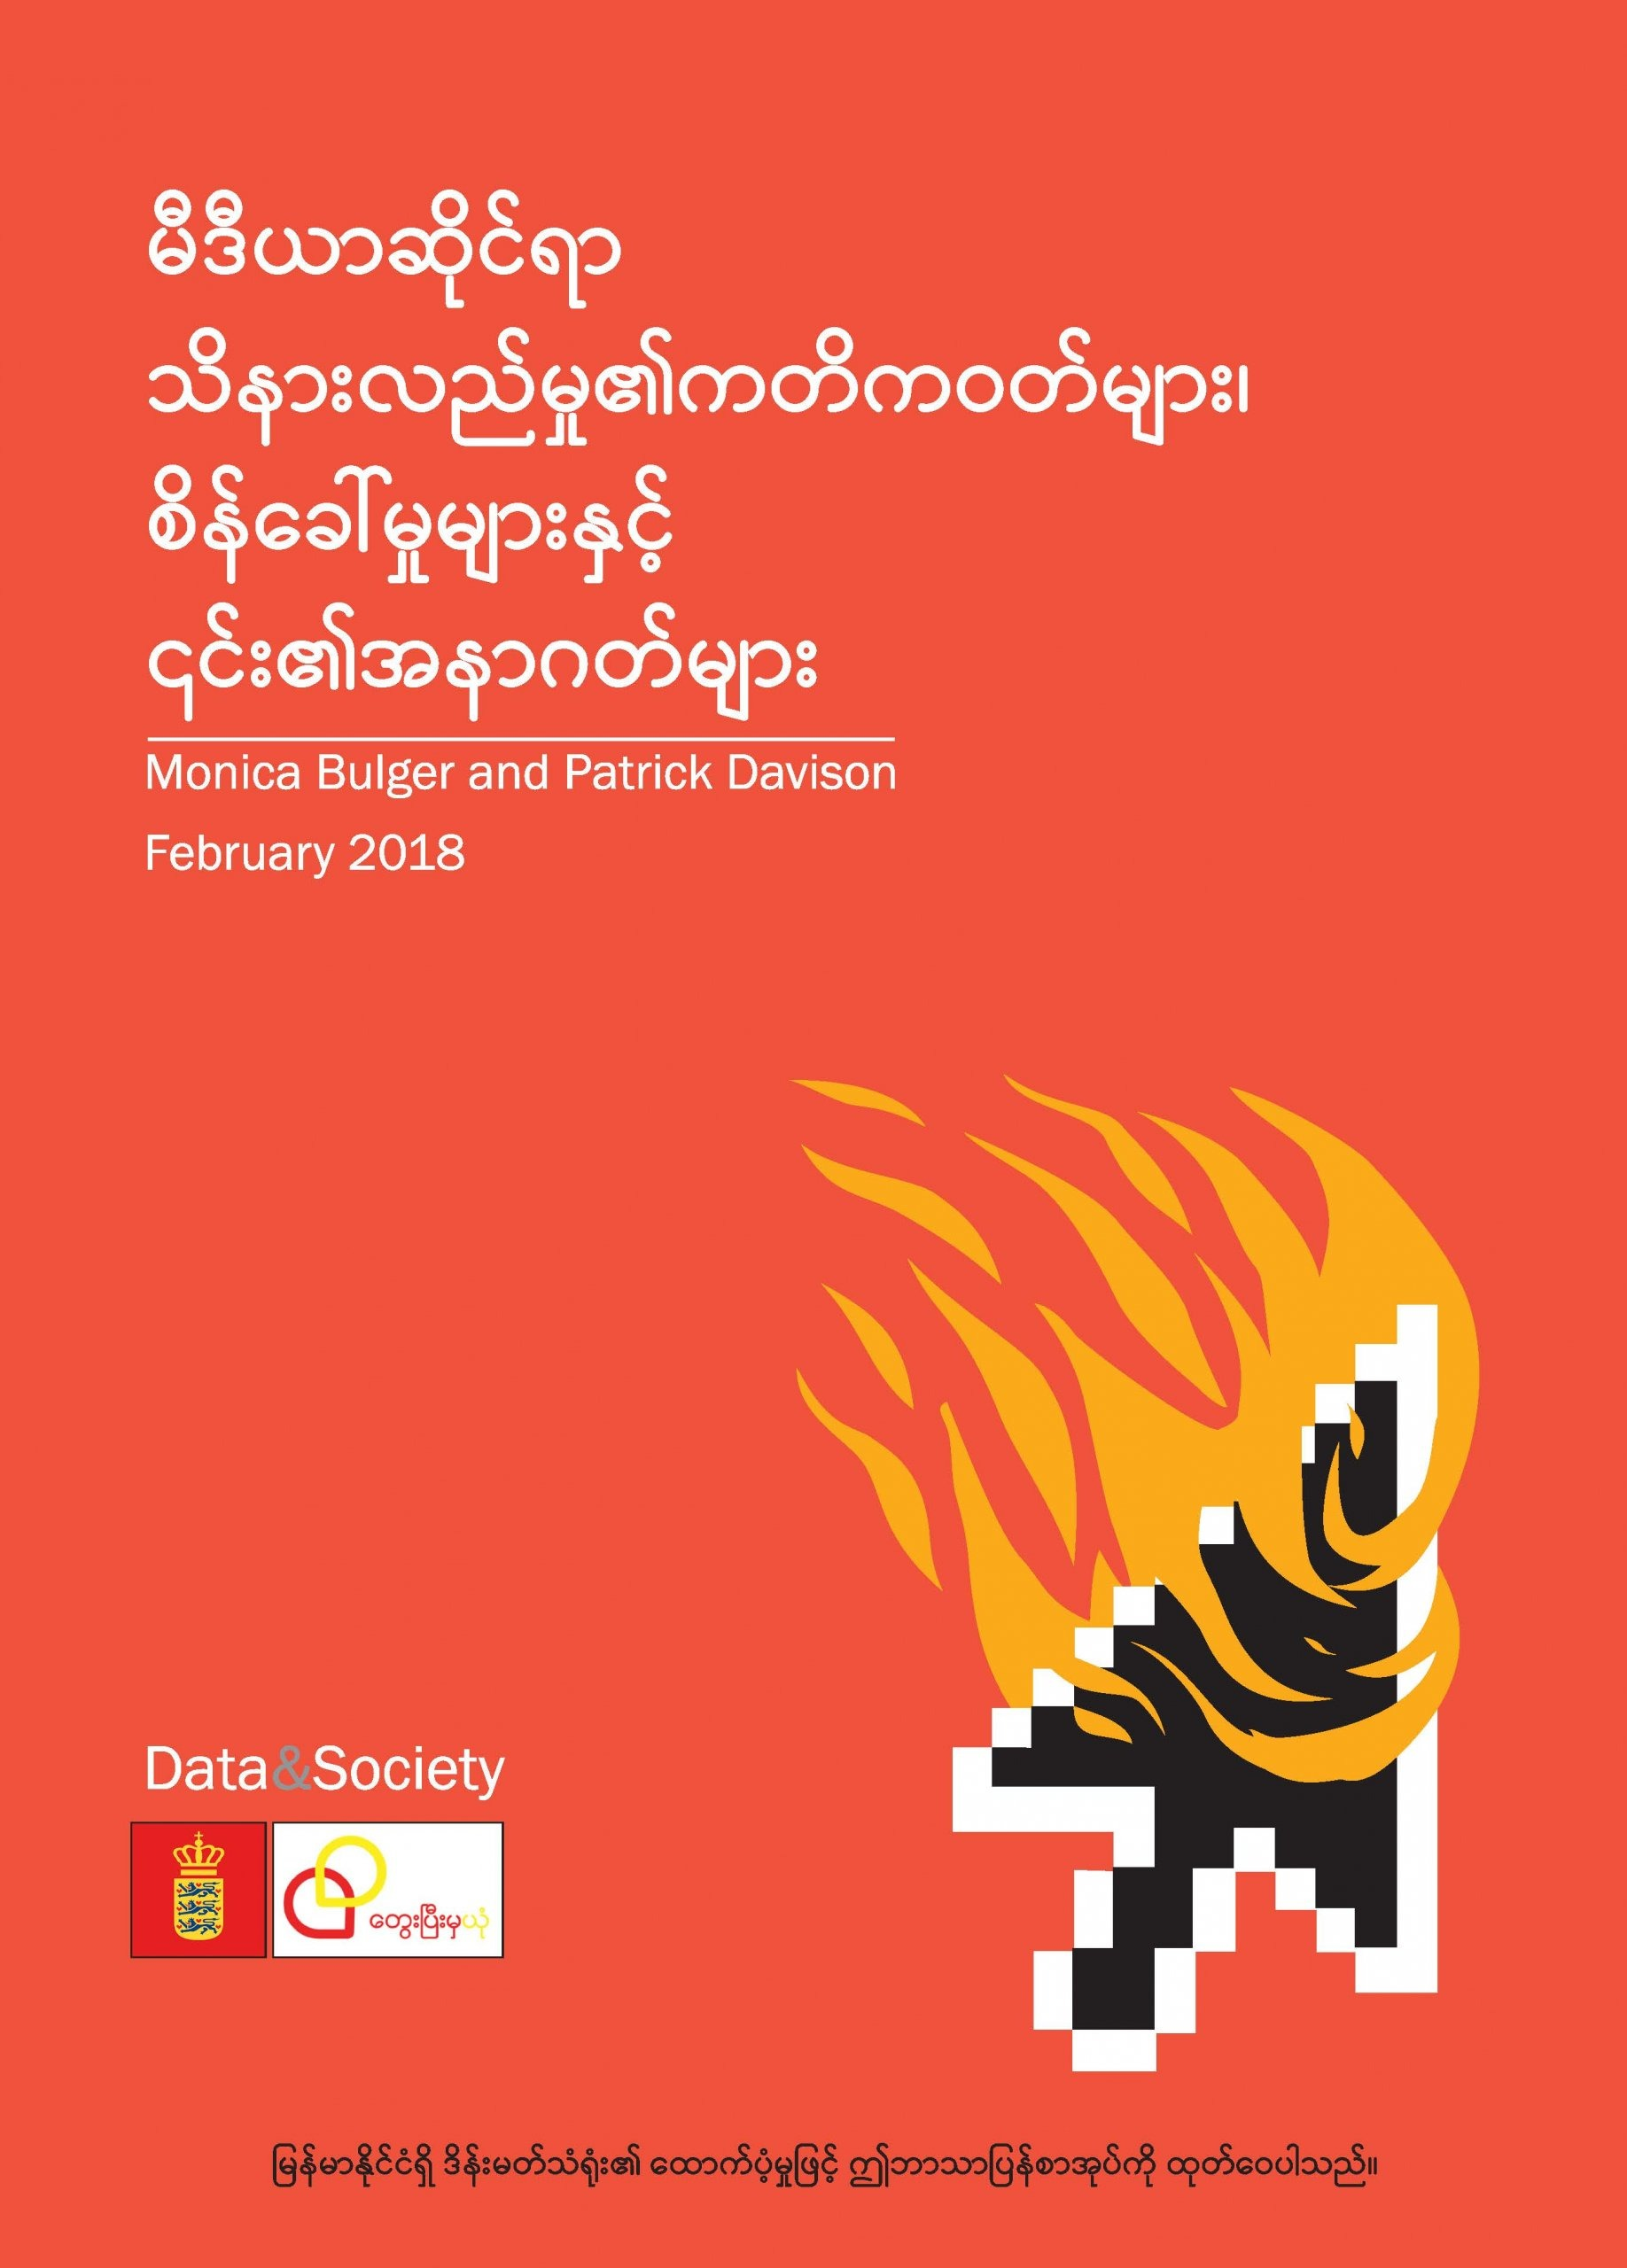 Data & Society publications on media literacy translated into Myanmar language